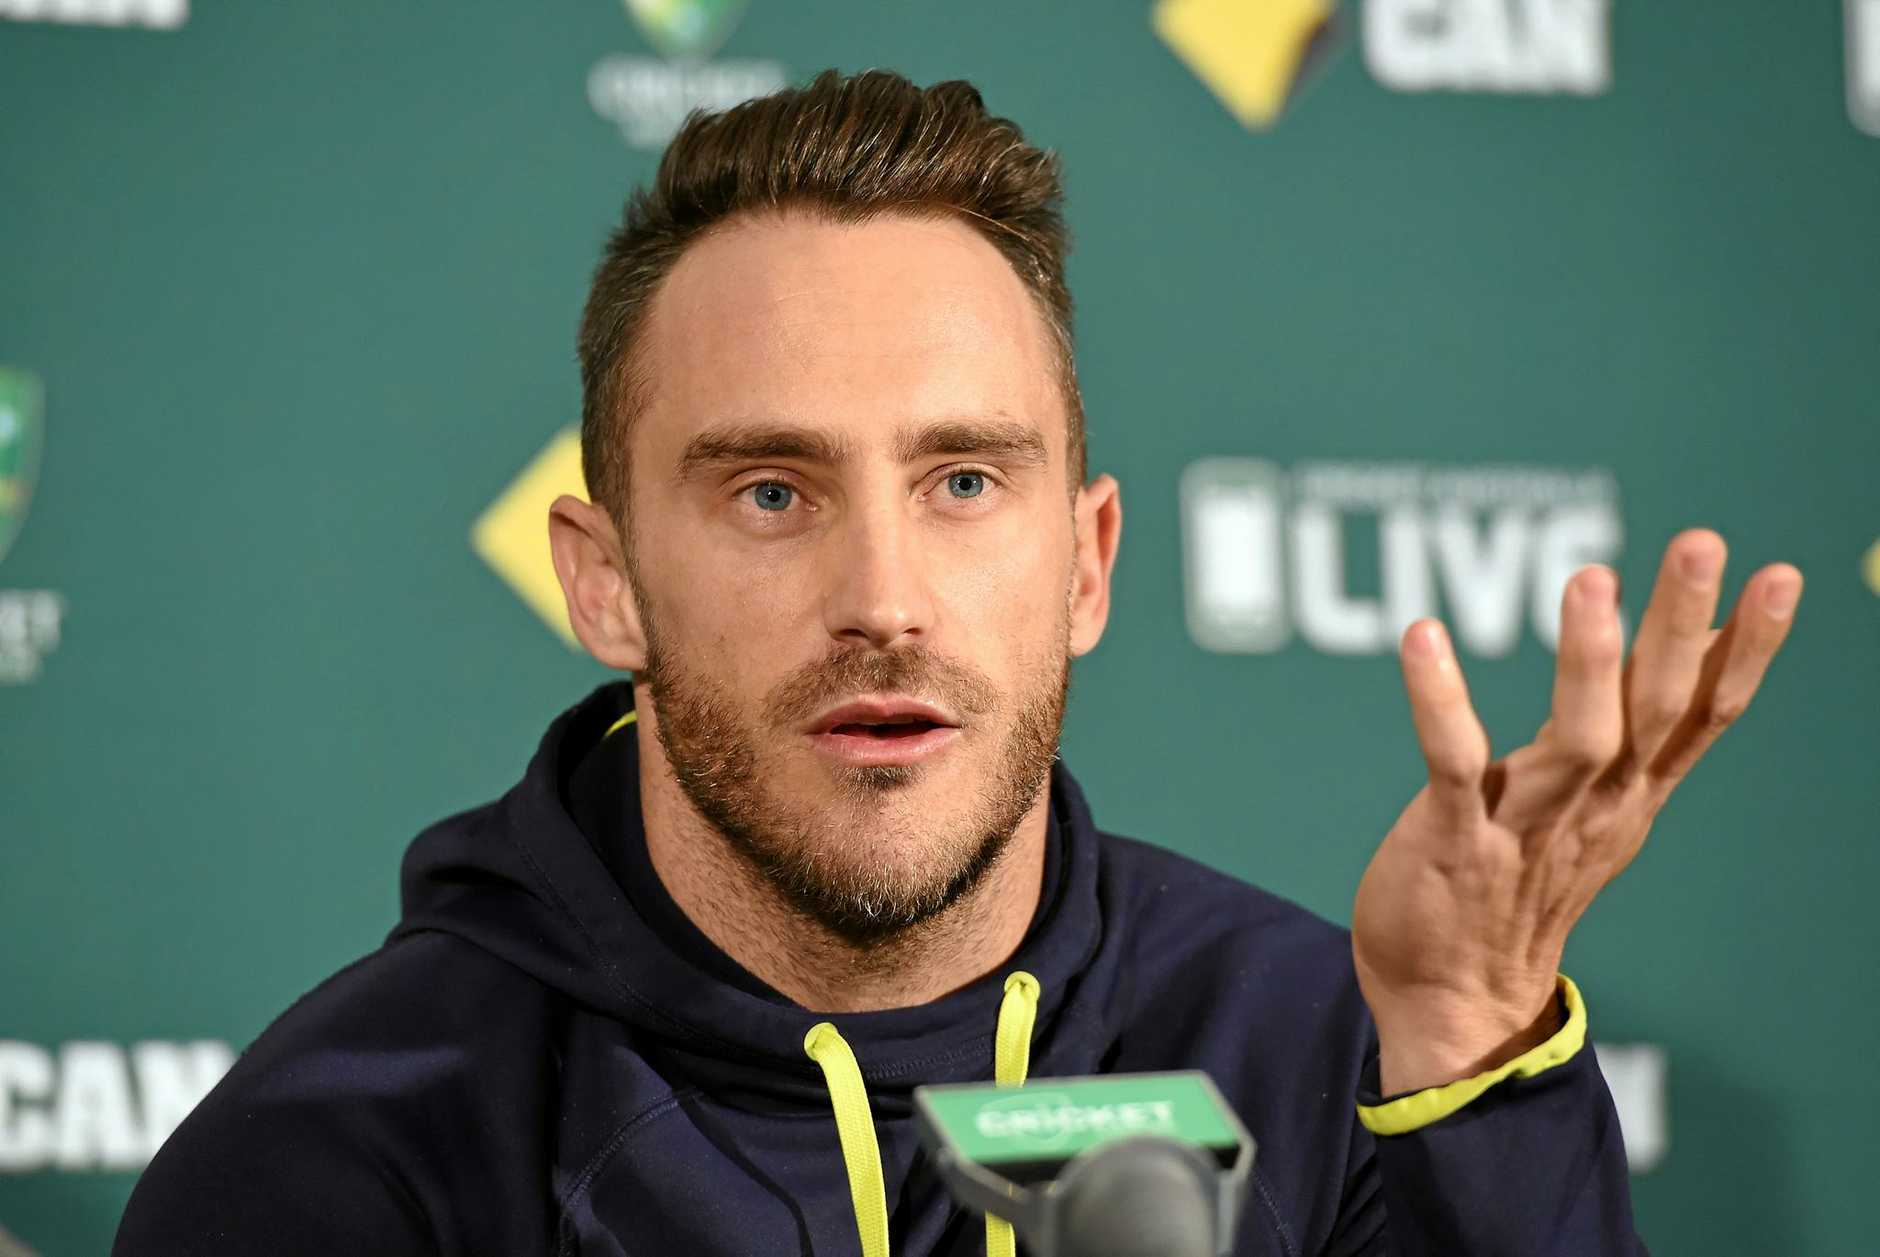 Faf du Plessis gestures during a press conference. Picture: Dave Hunt/AAP